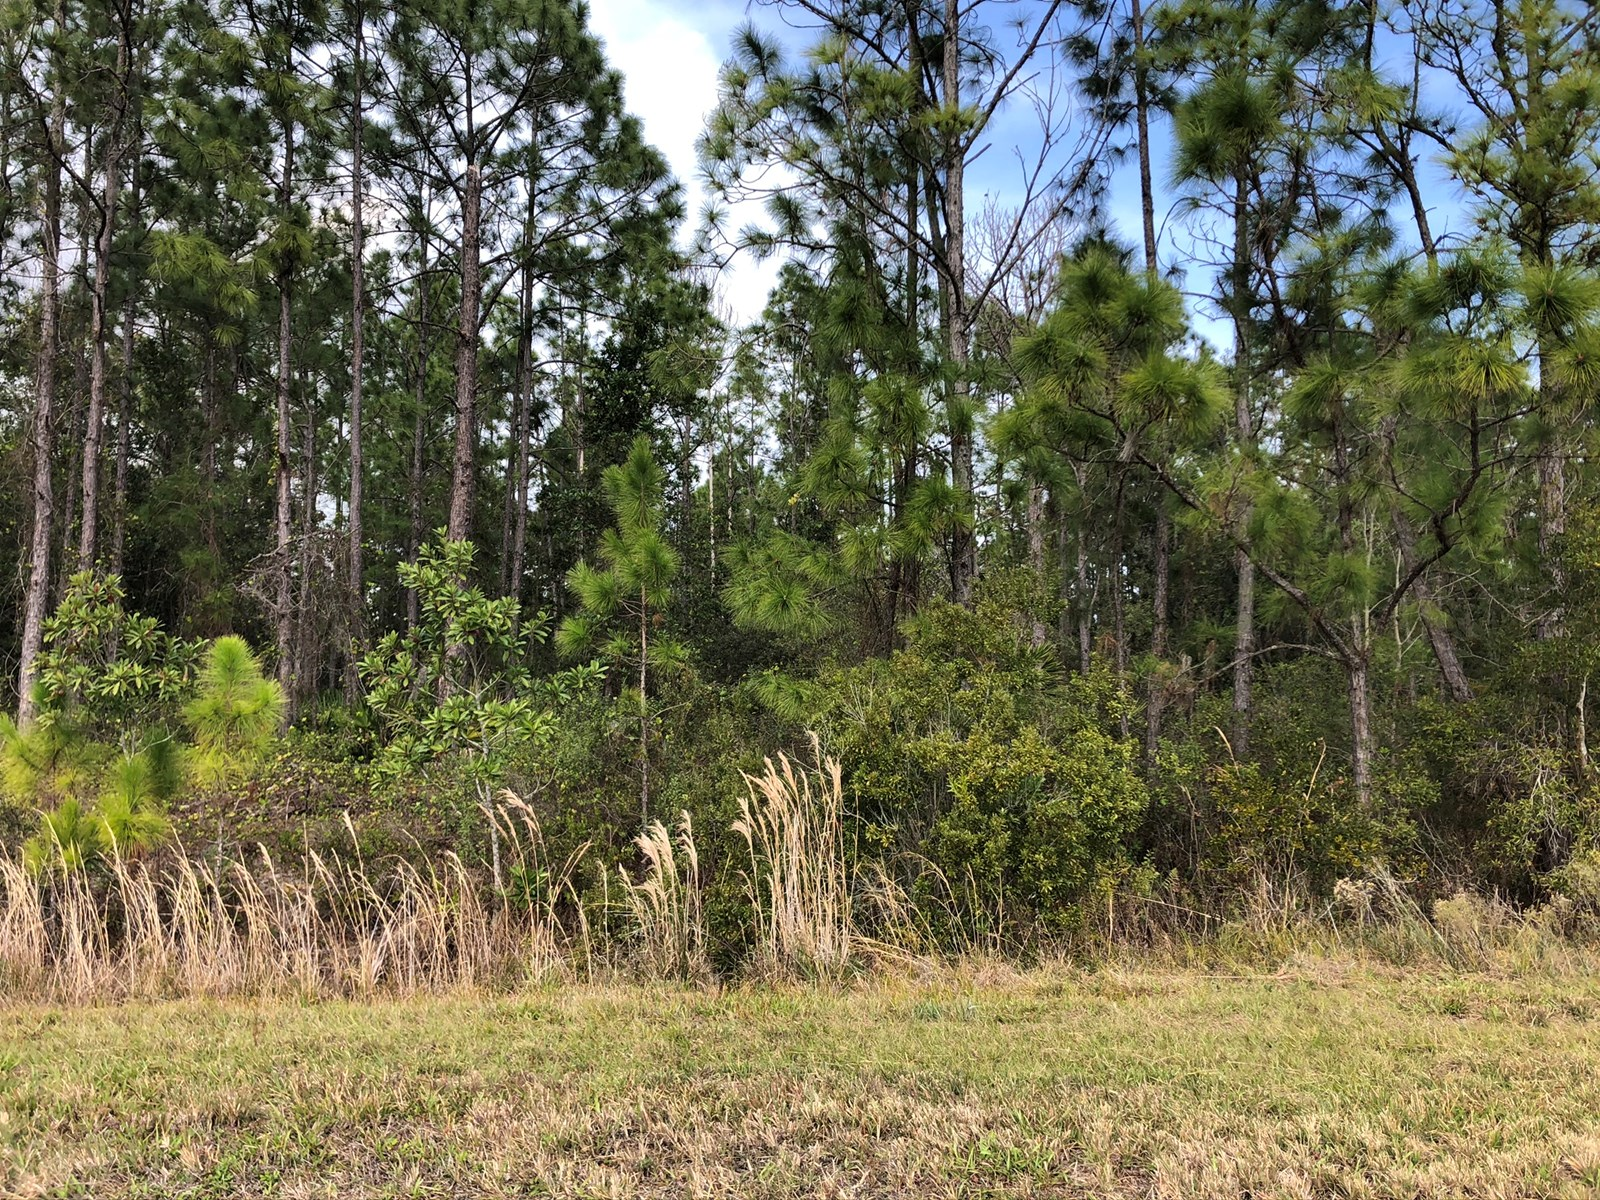 LAND FOR SALE, 2 ACRES, CENTRAL FLORIDA, FROSTPROOF